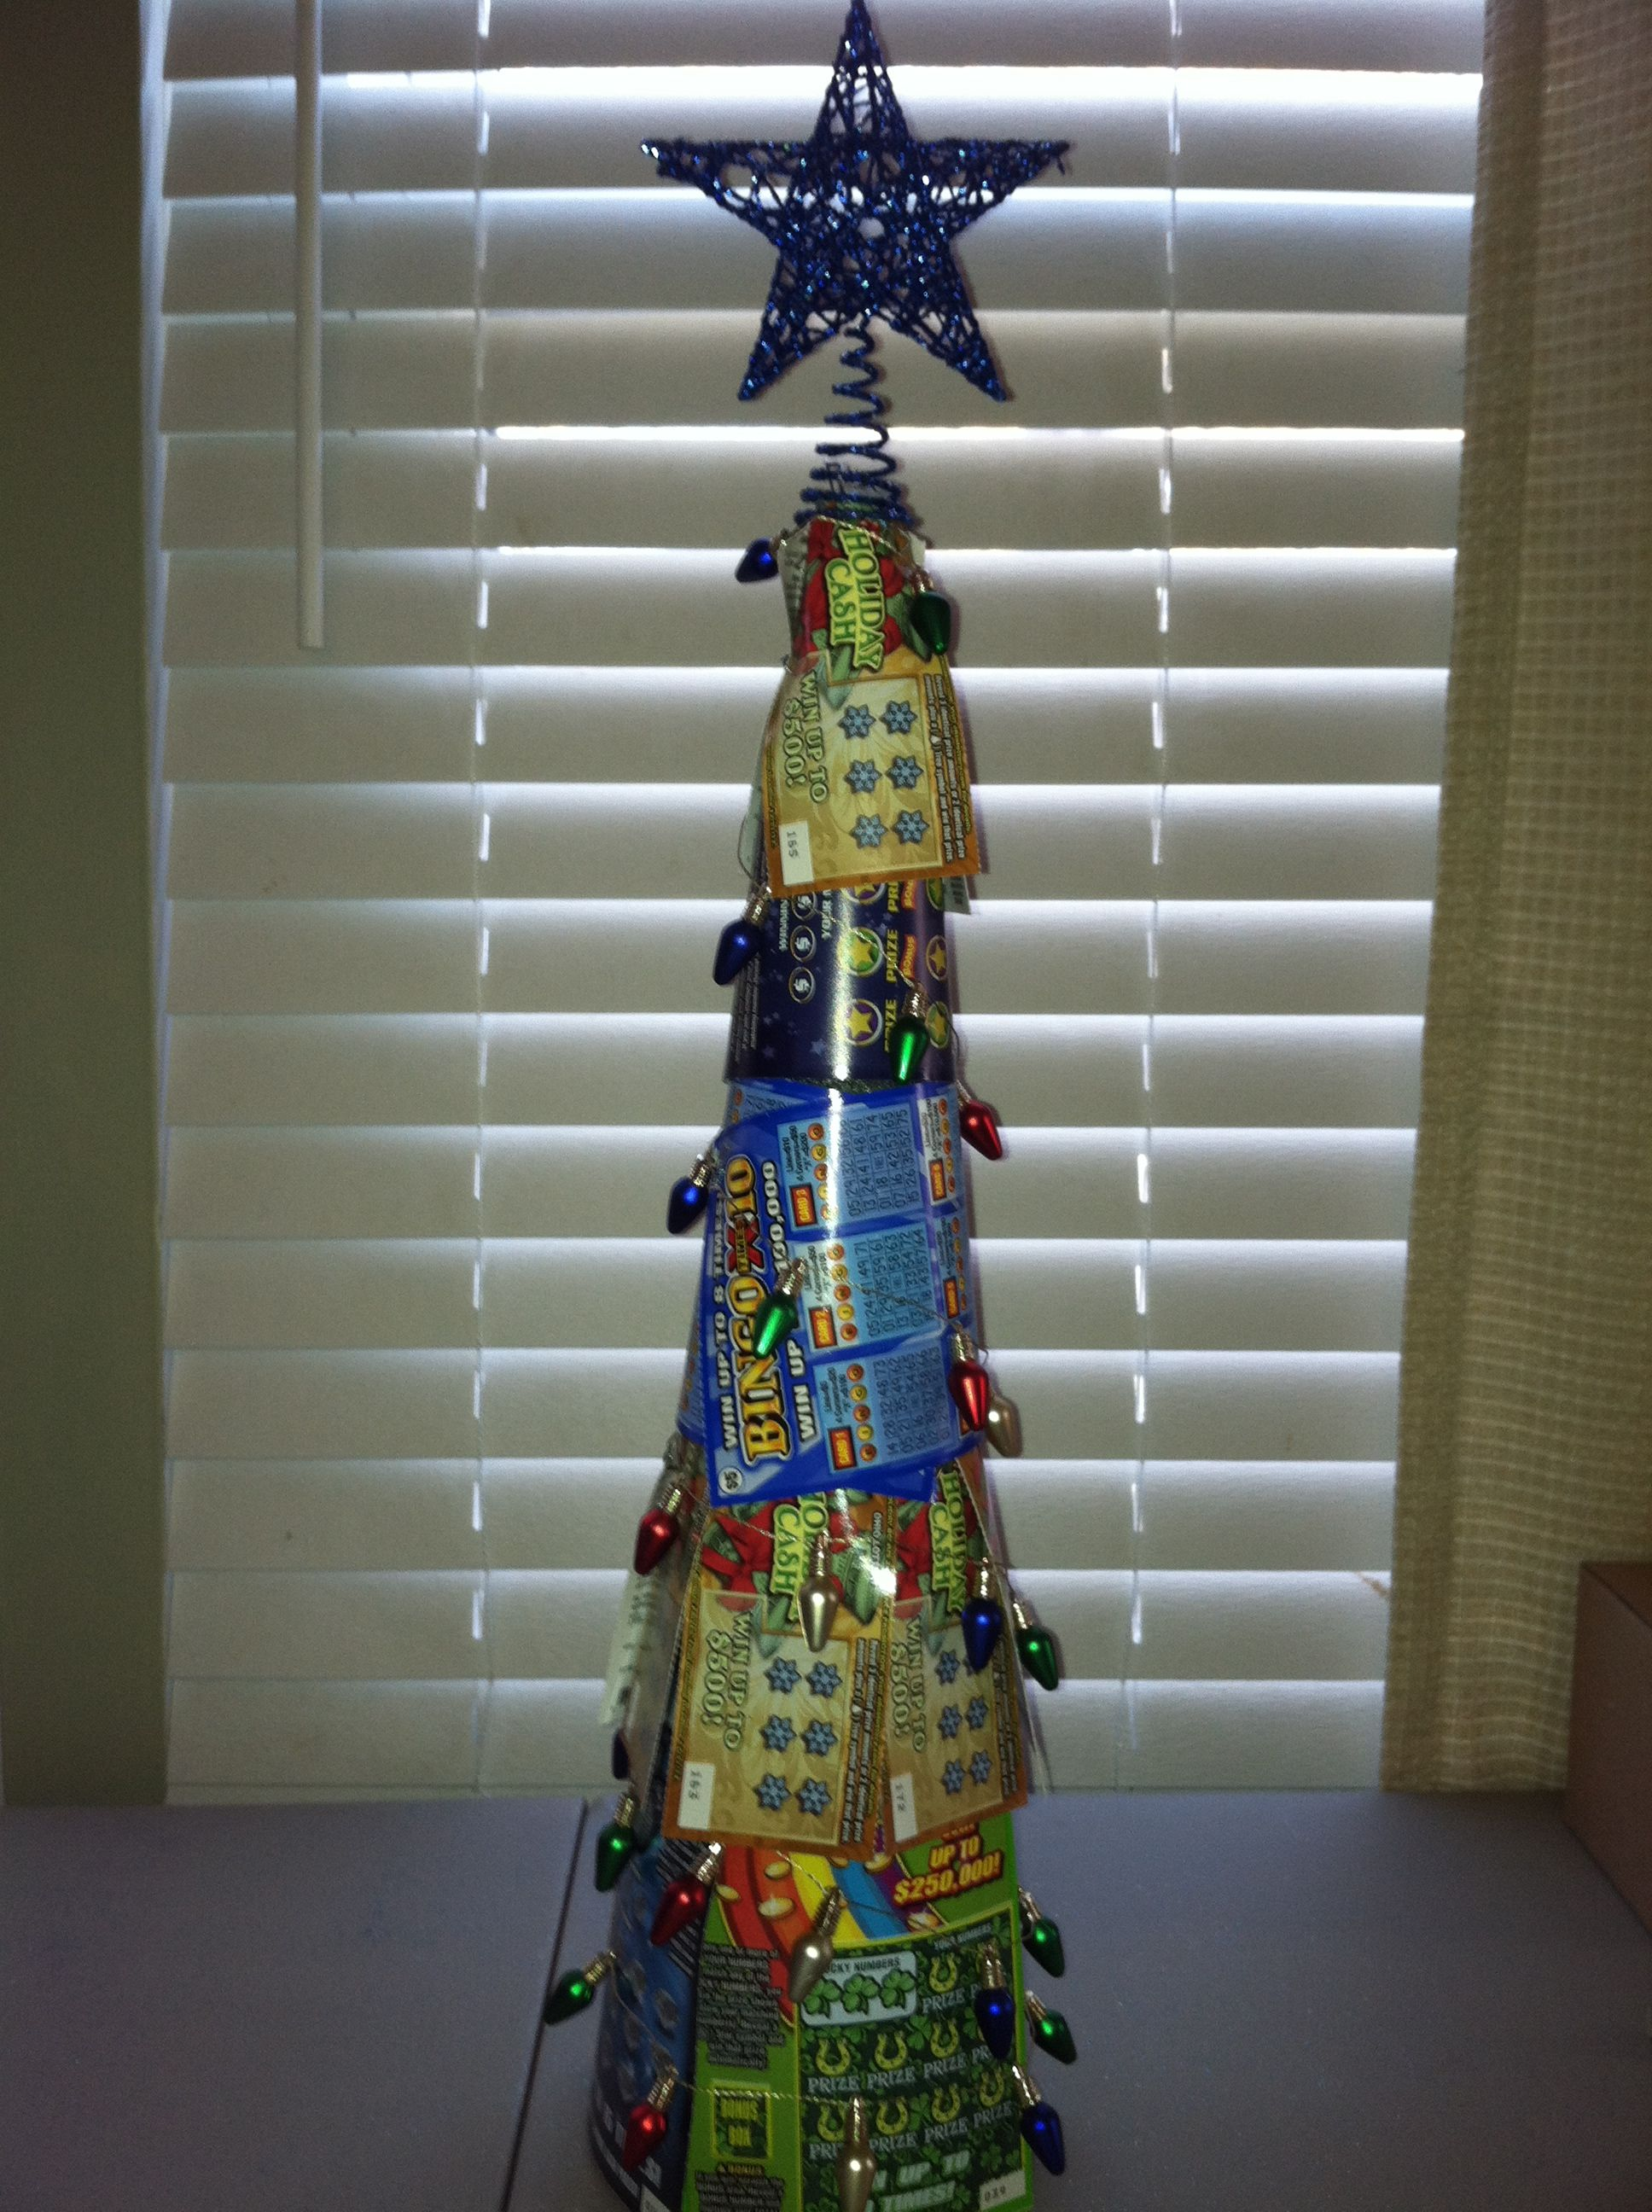 Lottery Christmas Tree Take A Foam Form Pin Lottery Tickets To It As The Leaves And Then Buy Christmas Crafty Christmas Crafts To Make Lottery Ticket Tree